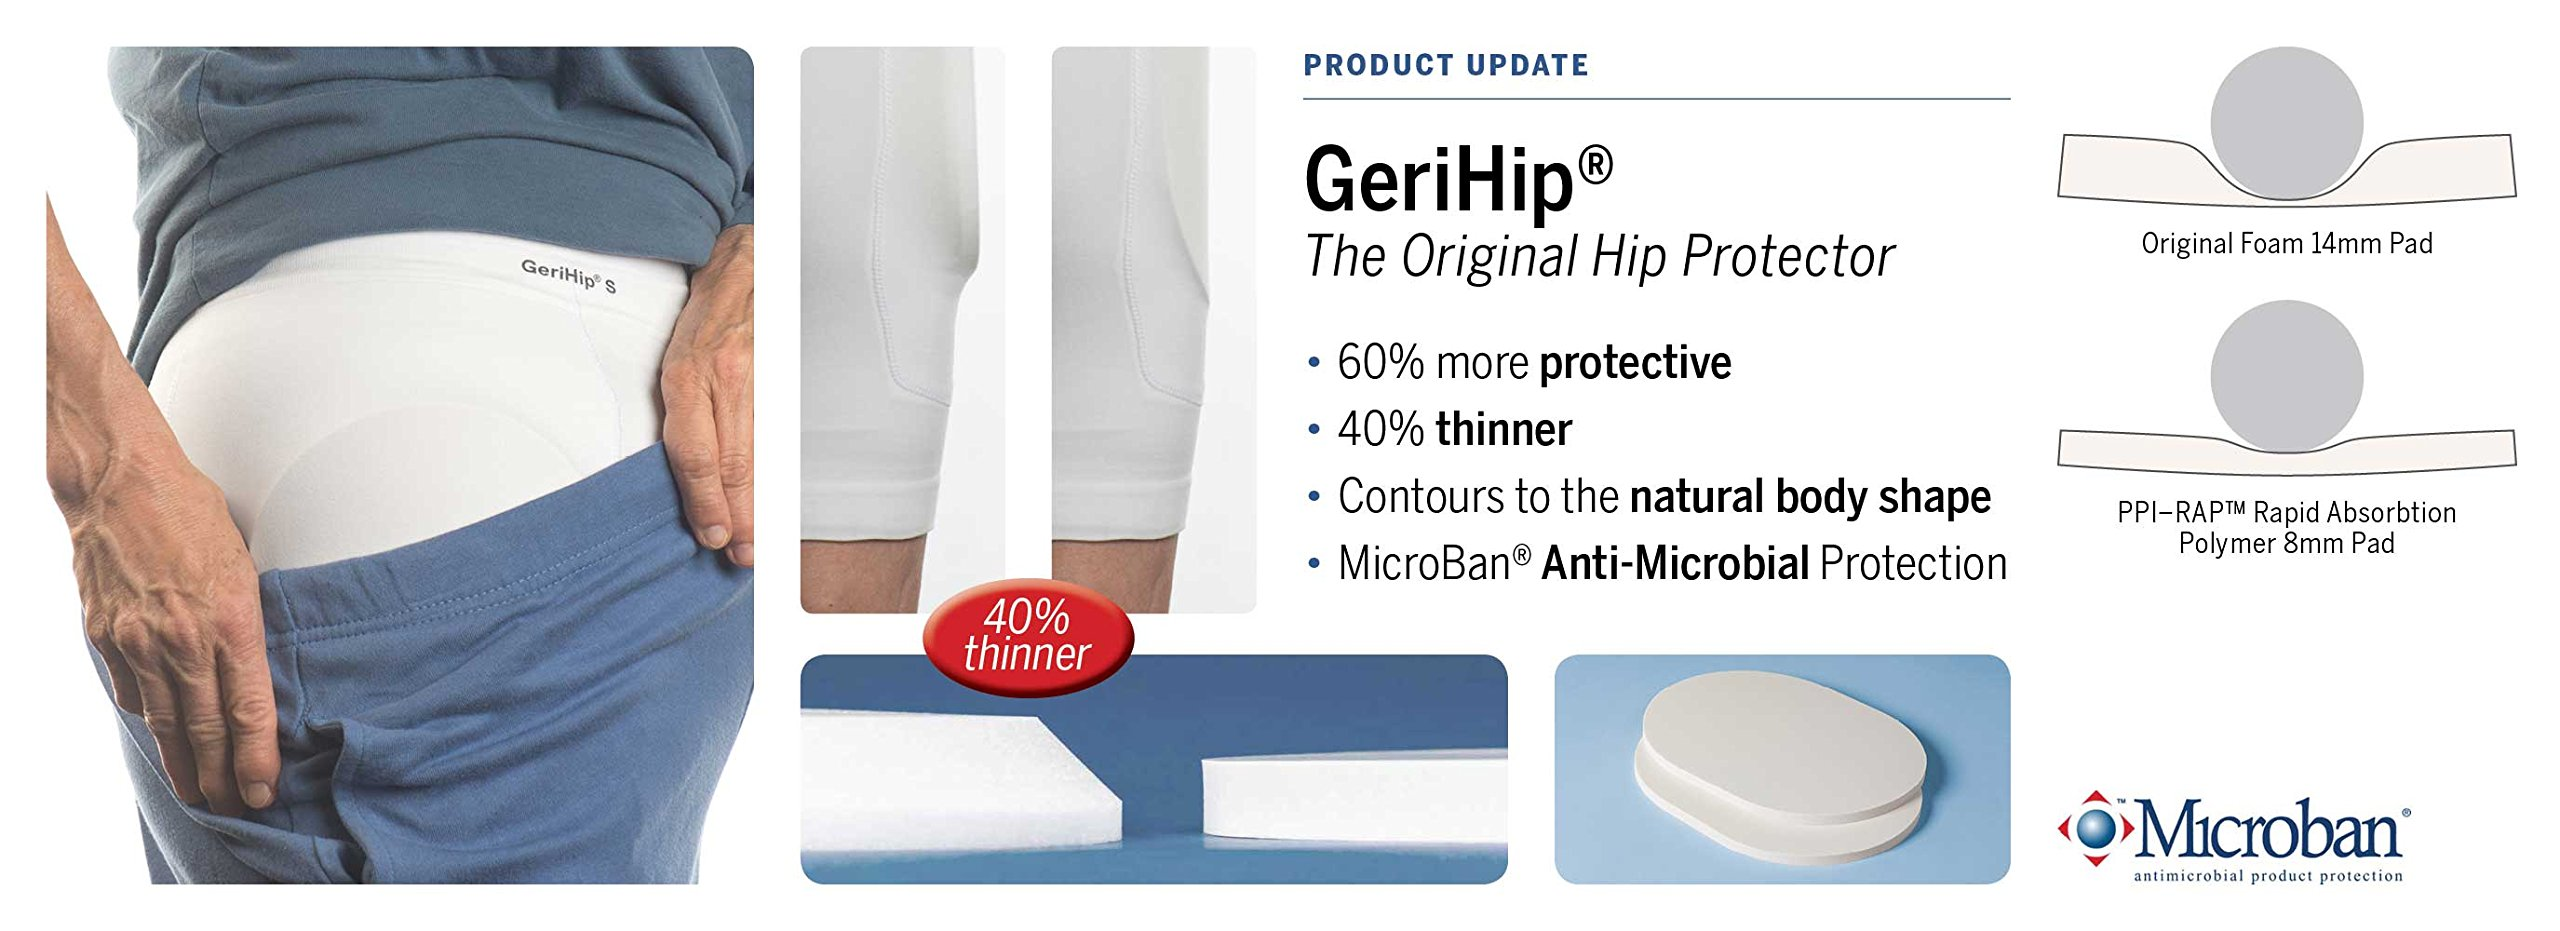 Prevent Products, Inc. | GeriHip® PPI-RAP™ Hip Protector Pads & Brief | Hip Protection For Elderly Falls, Increase Confidence Today!